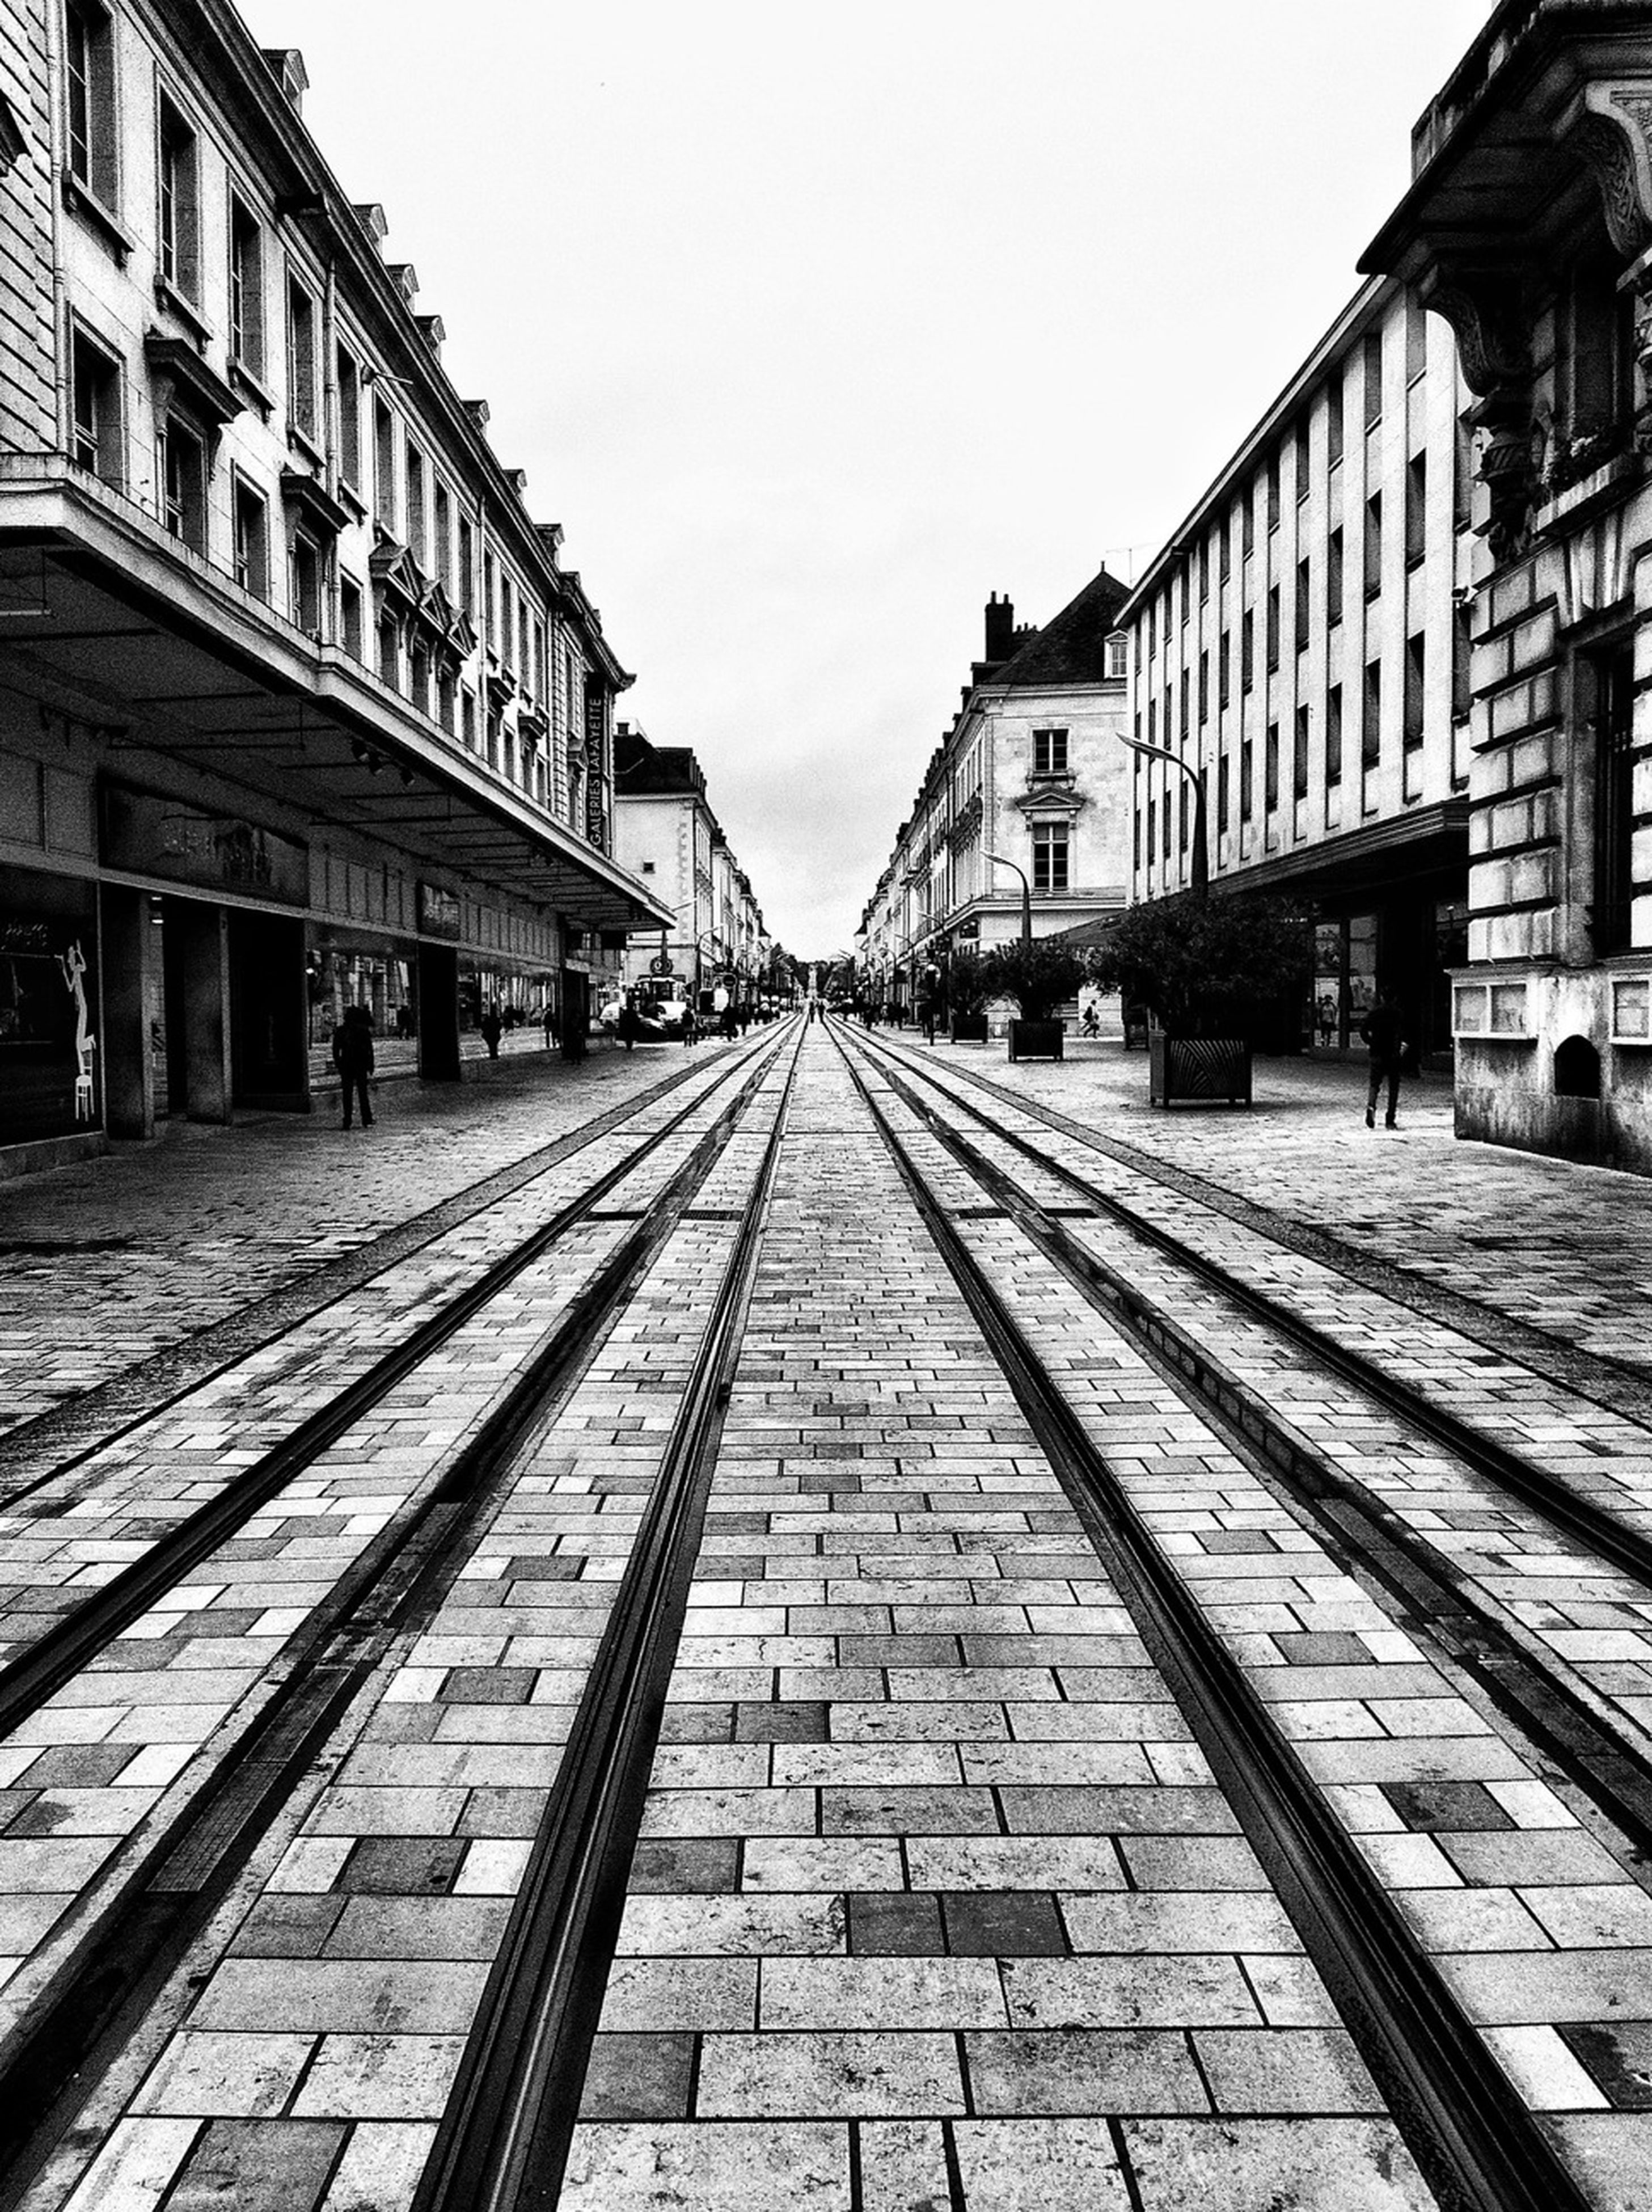 architecture, built structure, building exterior, the way forward, diminishing perspective, vanishing point, railroad track, city, transportation, clear sky, building, sky, incidental people, day, outdoors, street, cobblestone, rail transportation, residential building, empty